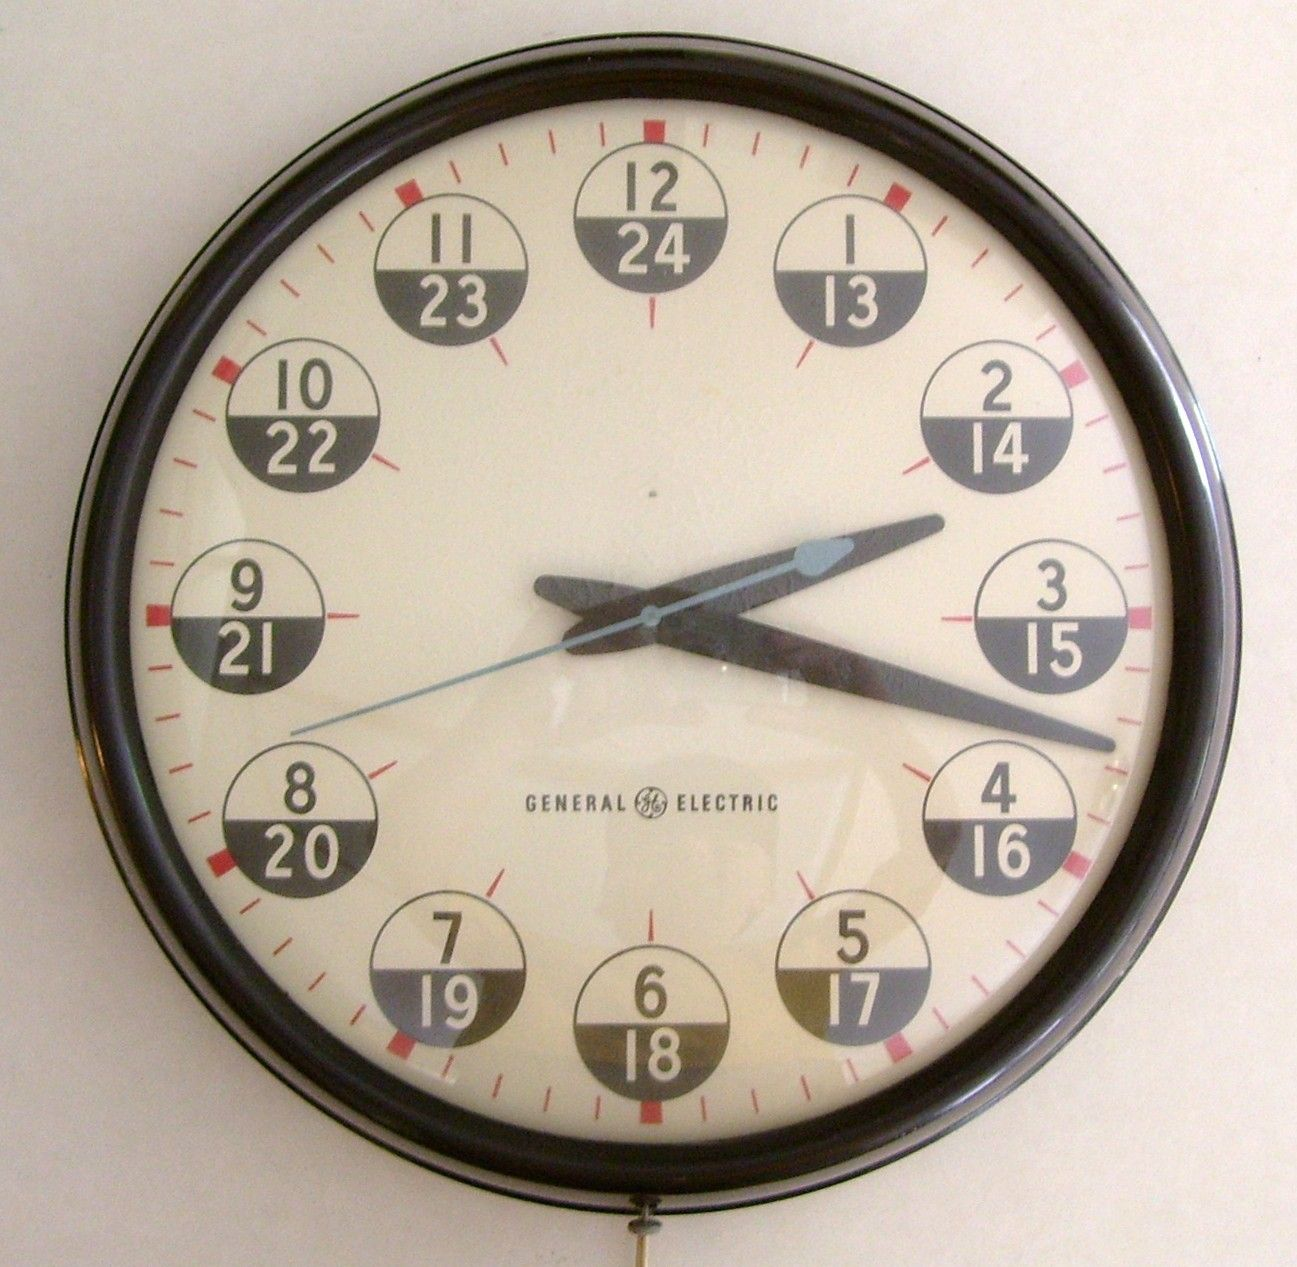 Details About Vintage General Electric Industrial Wall Clock 24 Hr Military Bakelite 17 5